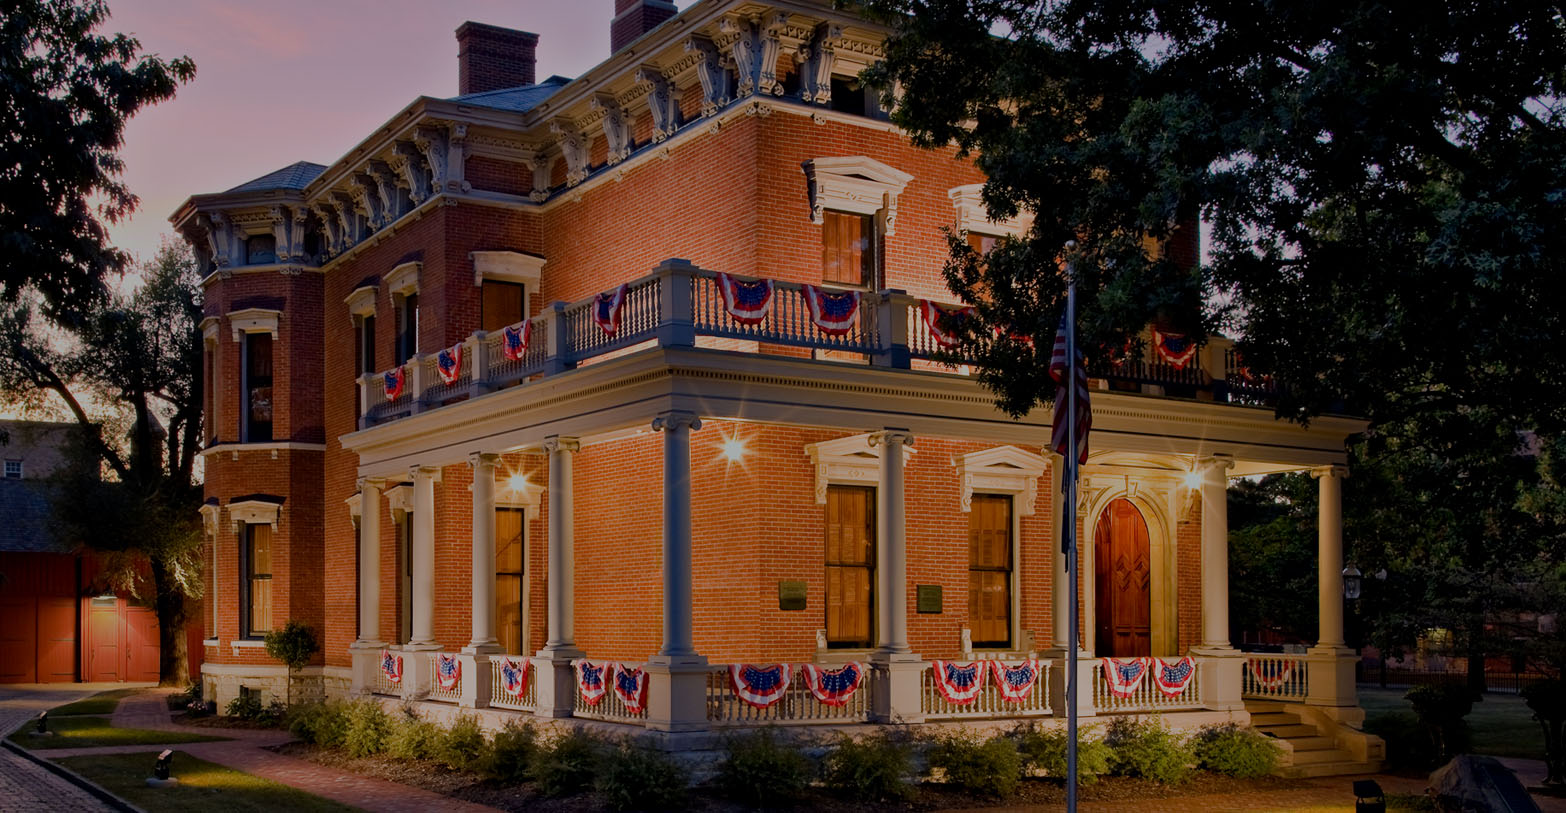 benjamin harrison presidential site visit the home of the 23rd